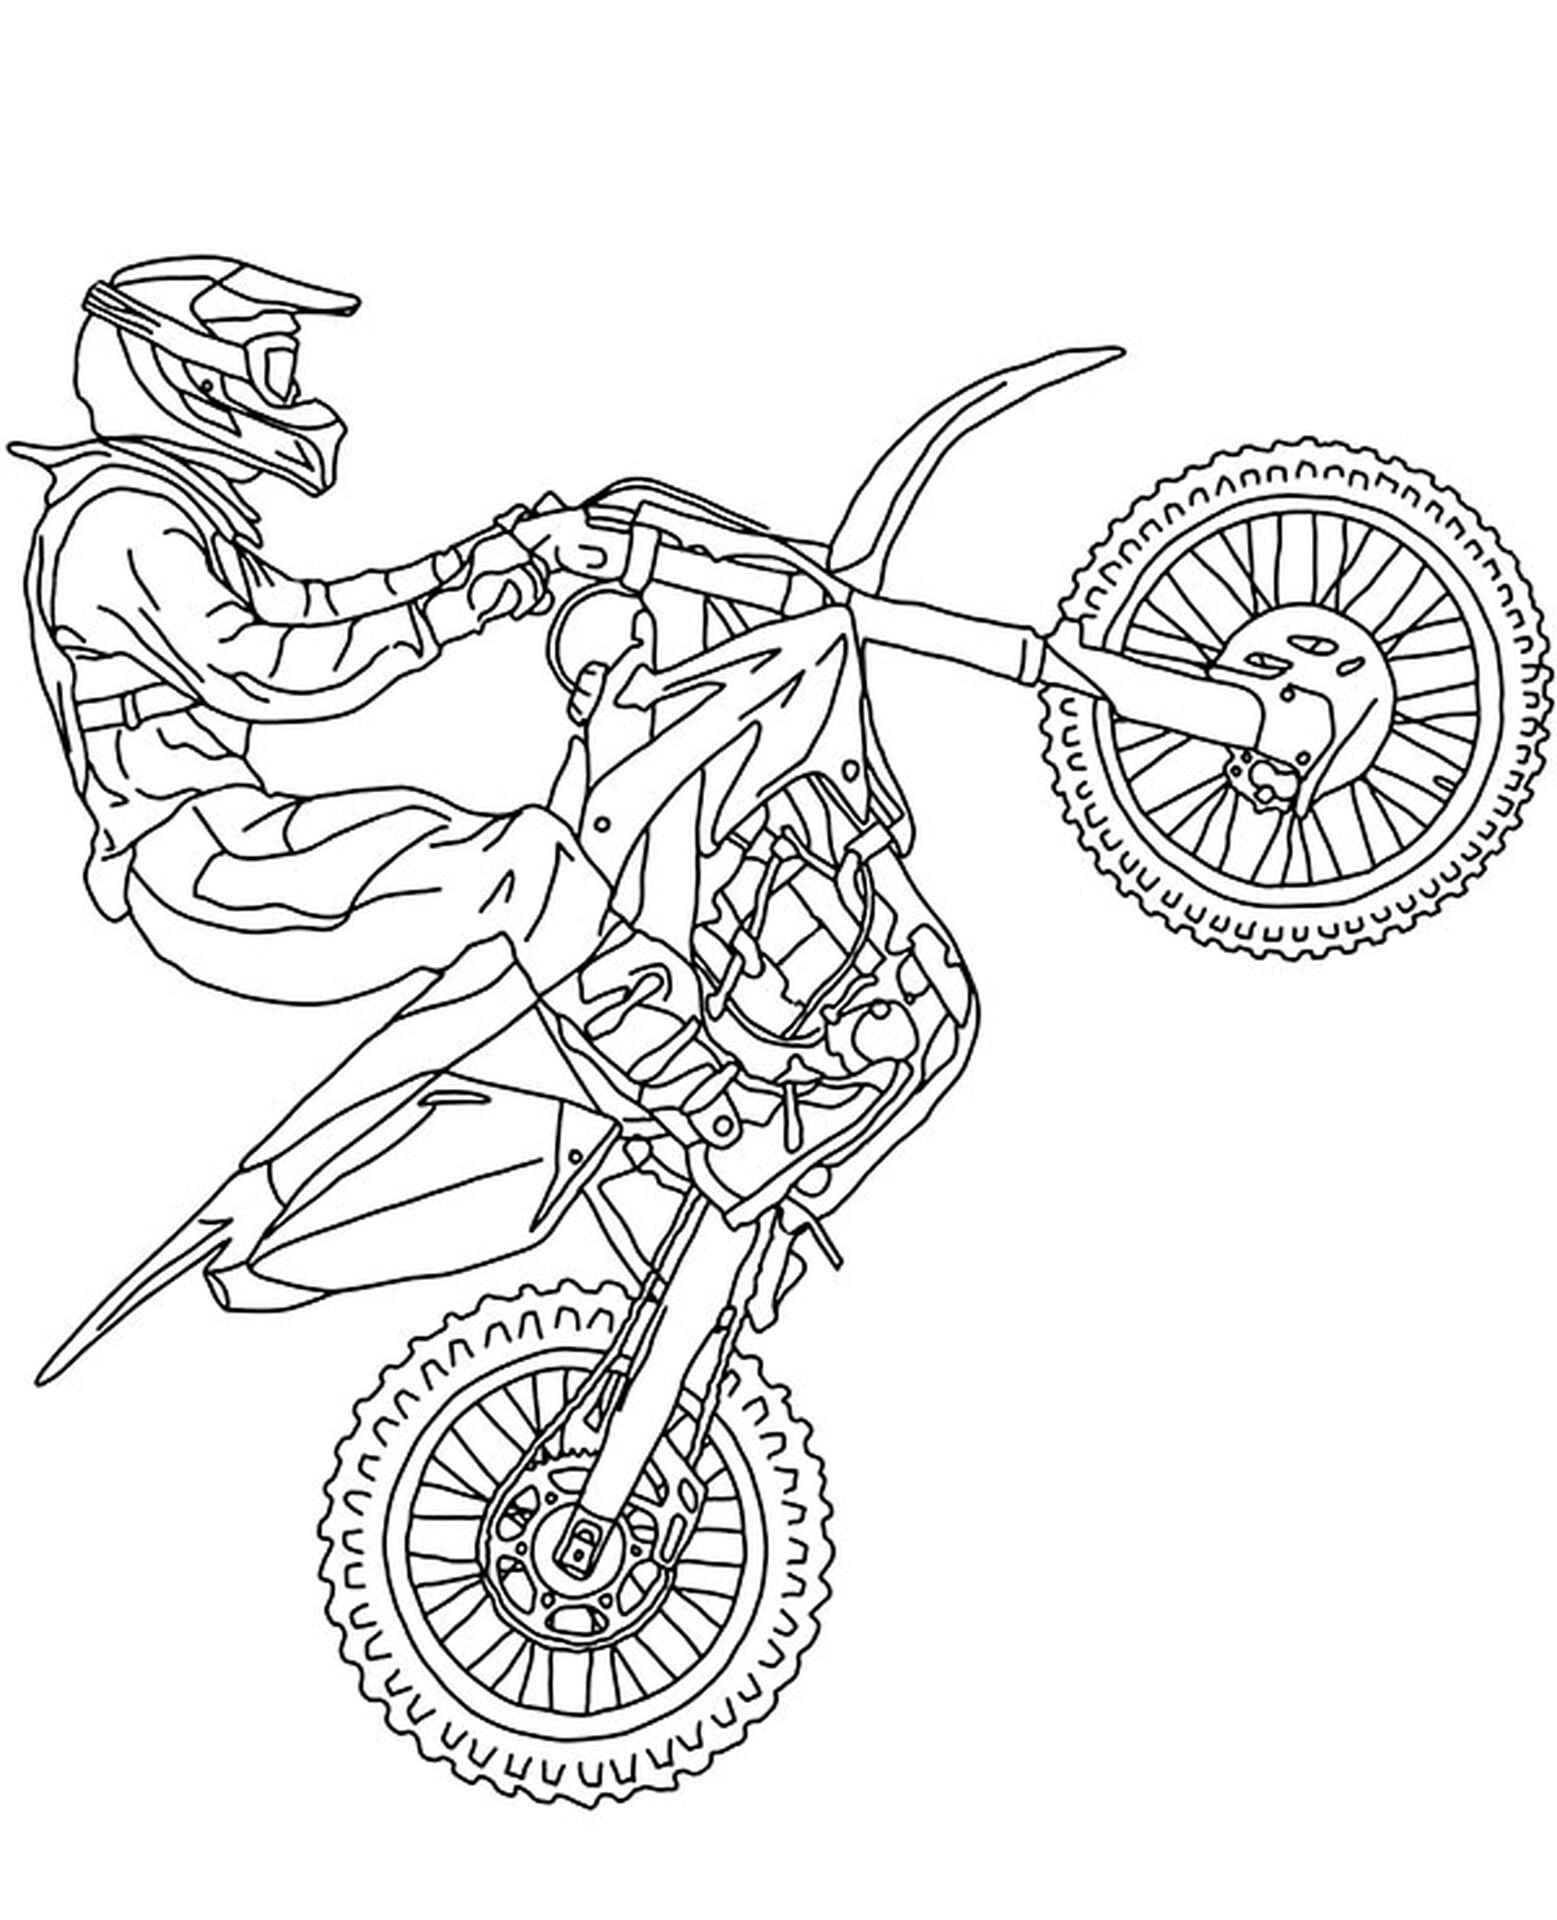 Cross-Country Motorbike Coloring Page